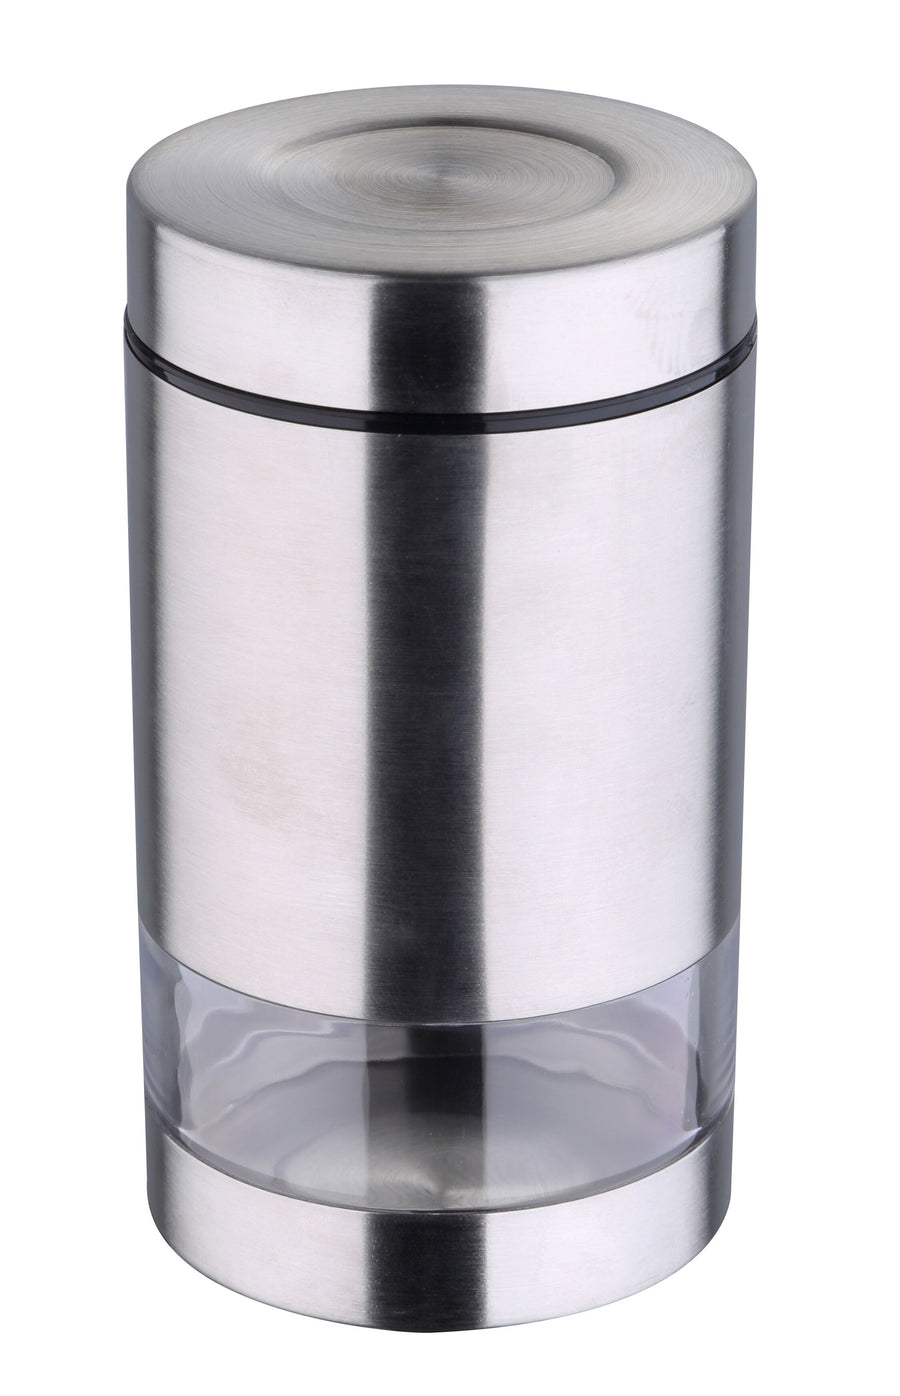 Canister 350 ml Stainless Steel (Silver)